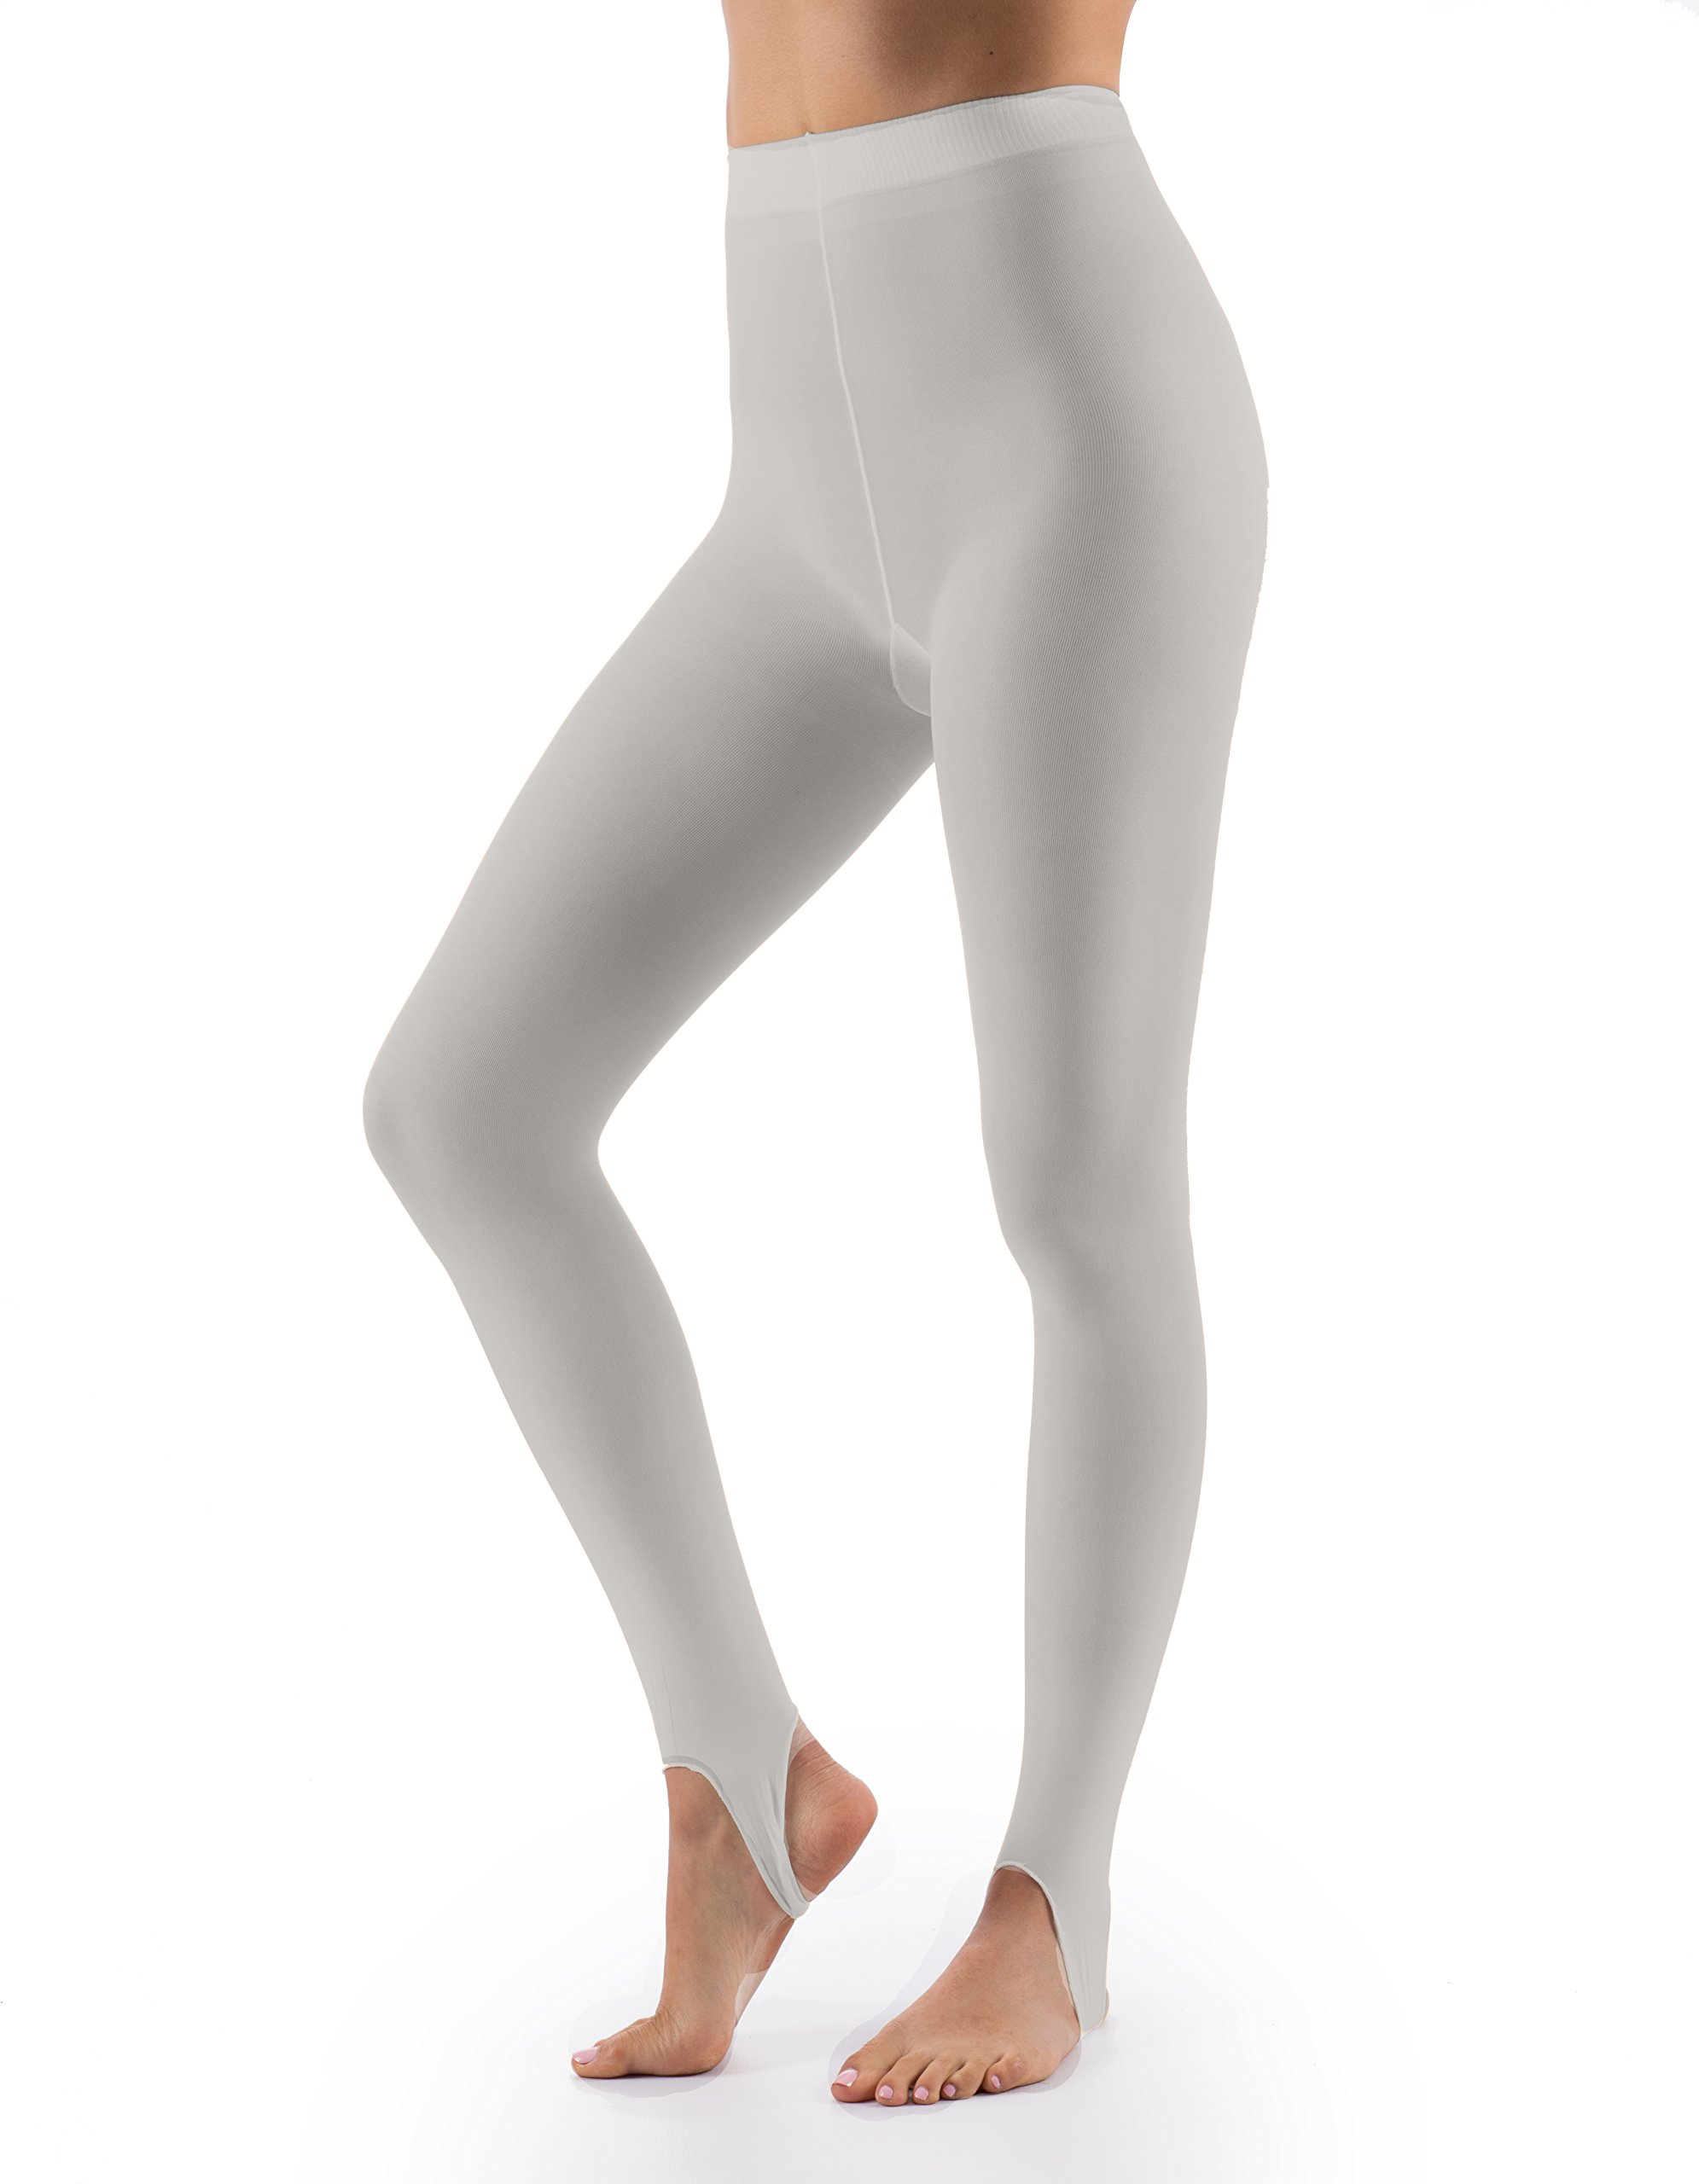 Grandeur Hosiery Women's Ladies Ultra Soft Stirrup Dance Ballet Tights Light Grey C